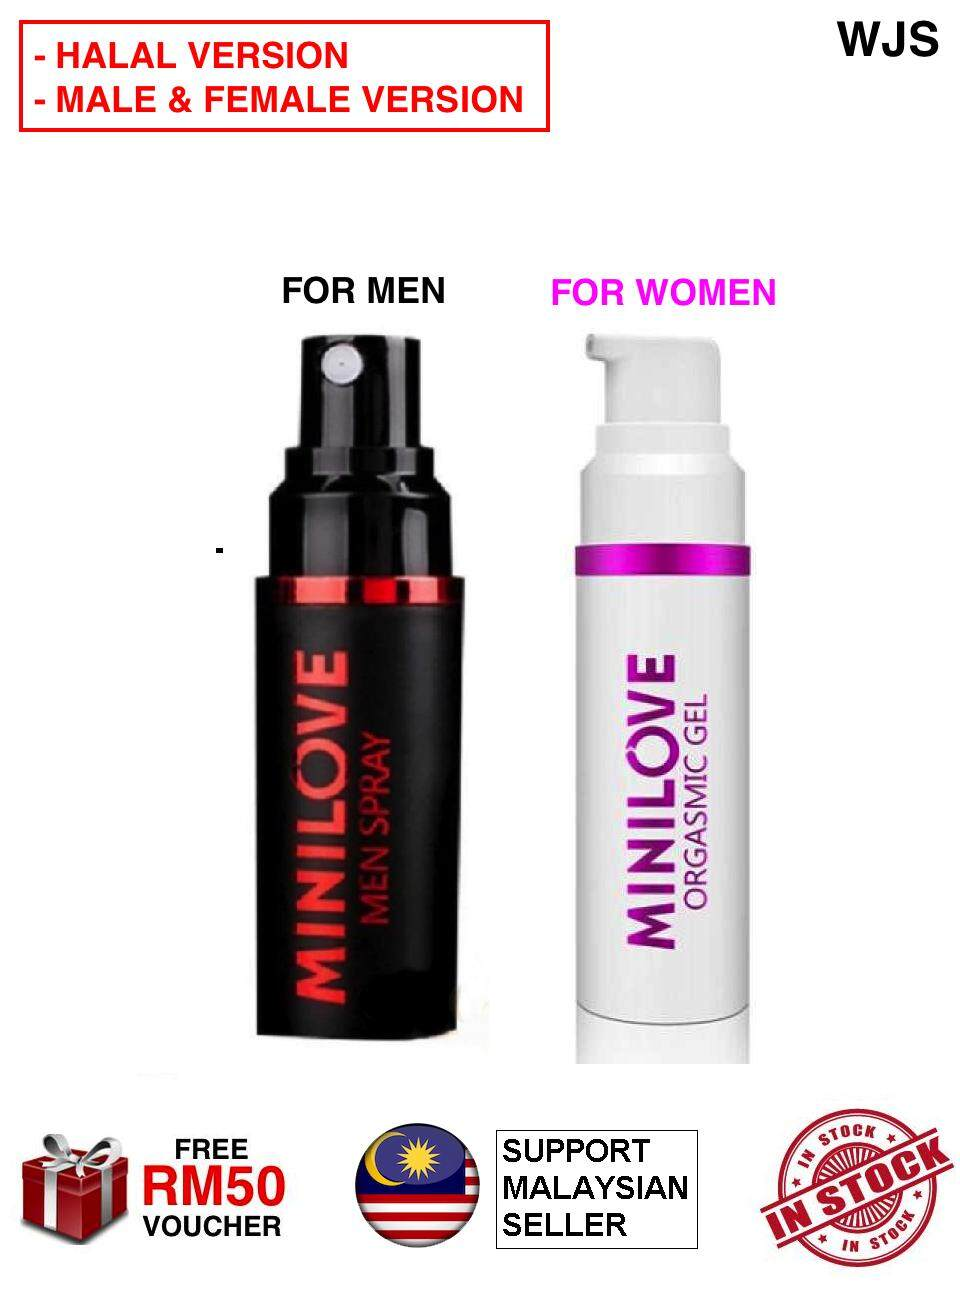 (TWO CHOICES) WJS Halal Lubricant Mini Love Spray More Wet More Fun Spray Love Lubricants For Men Women BLACK WHITE [FREE RM 50 VOUCHER]